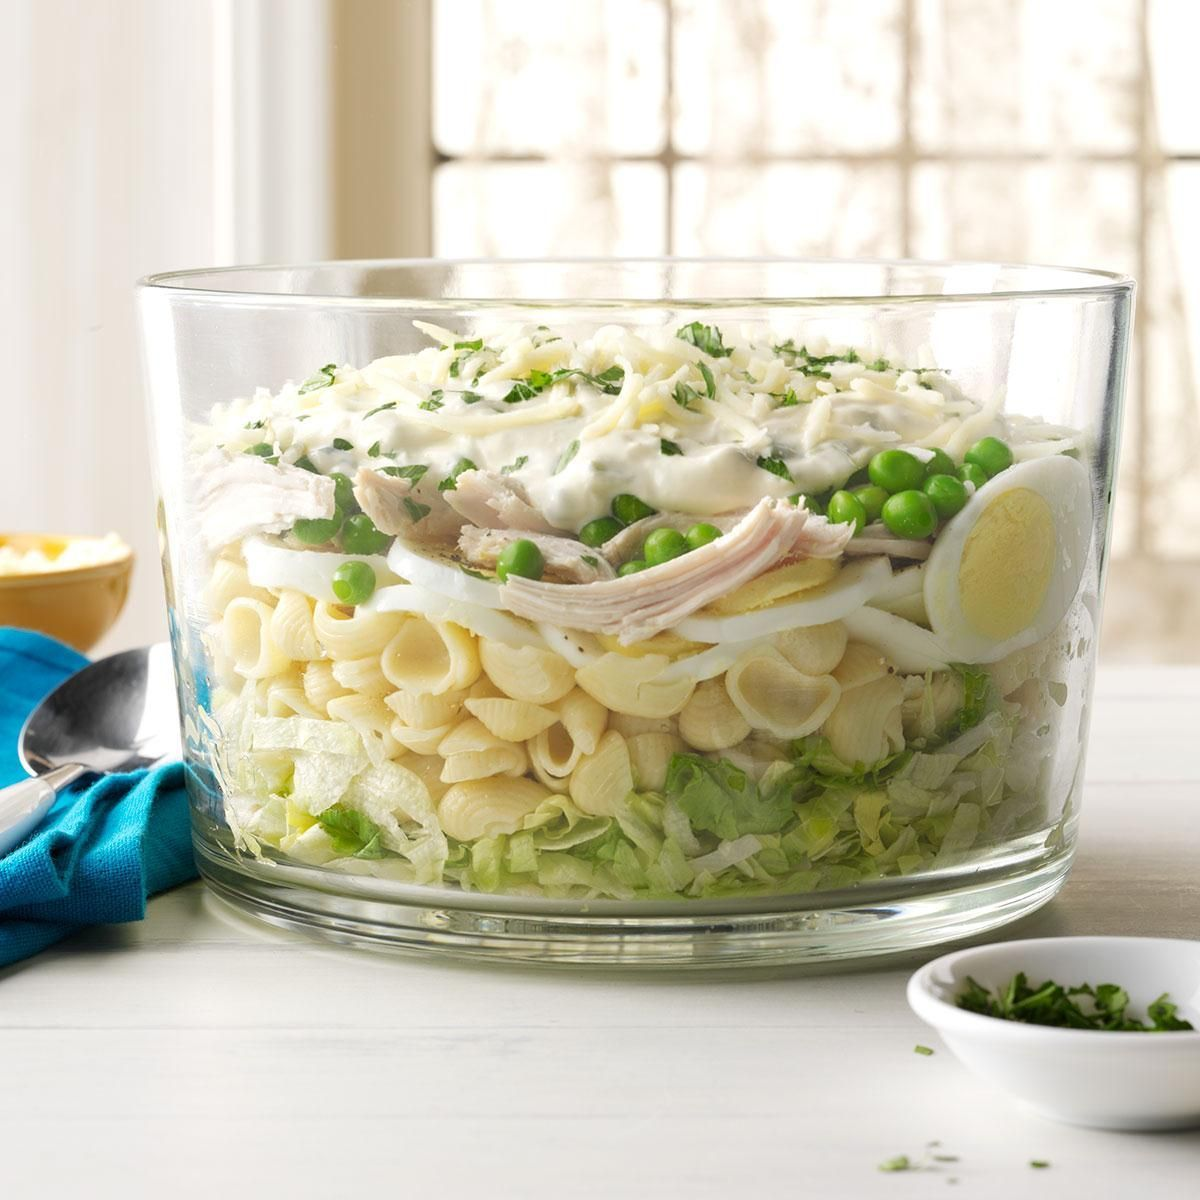 Hearty Six-Layer Salad Make-Ahead Hearty Six-Layer Salad Recipe from Taste of Home | This salad is an all-time favorite!The Recipe  The Recipe may refer to: